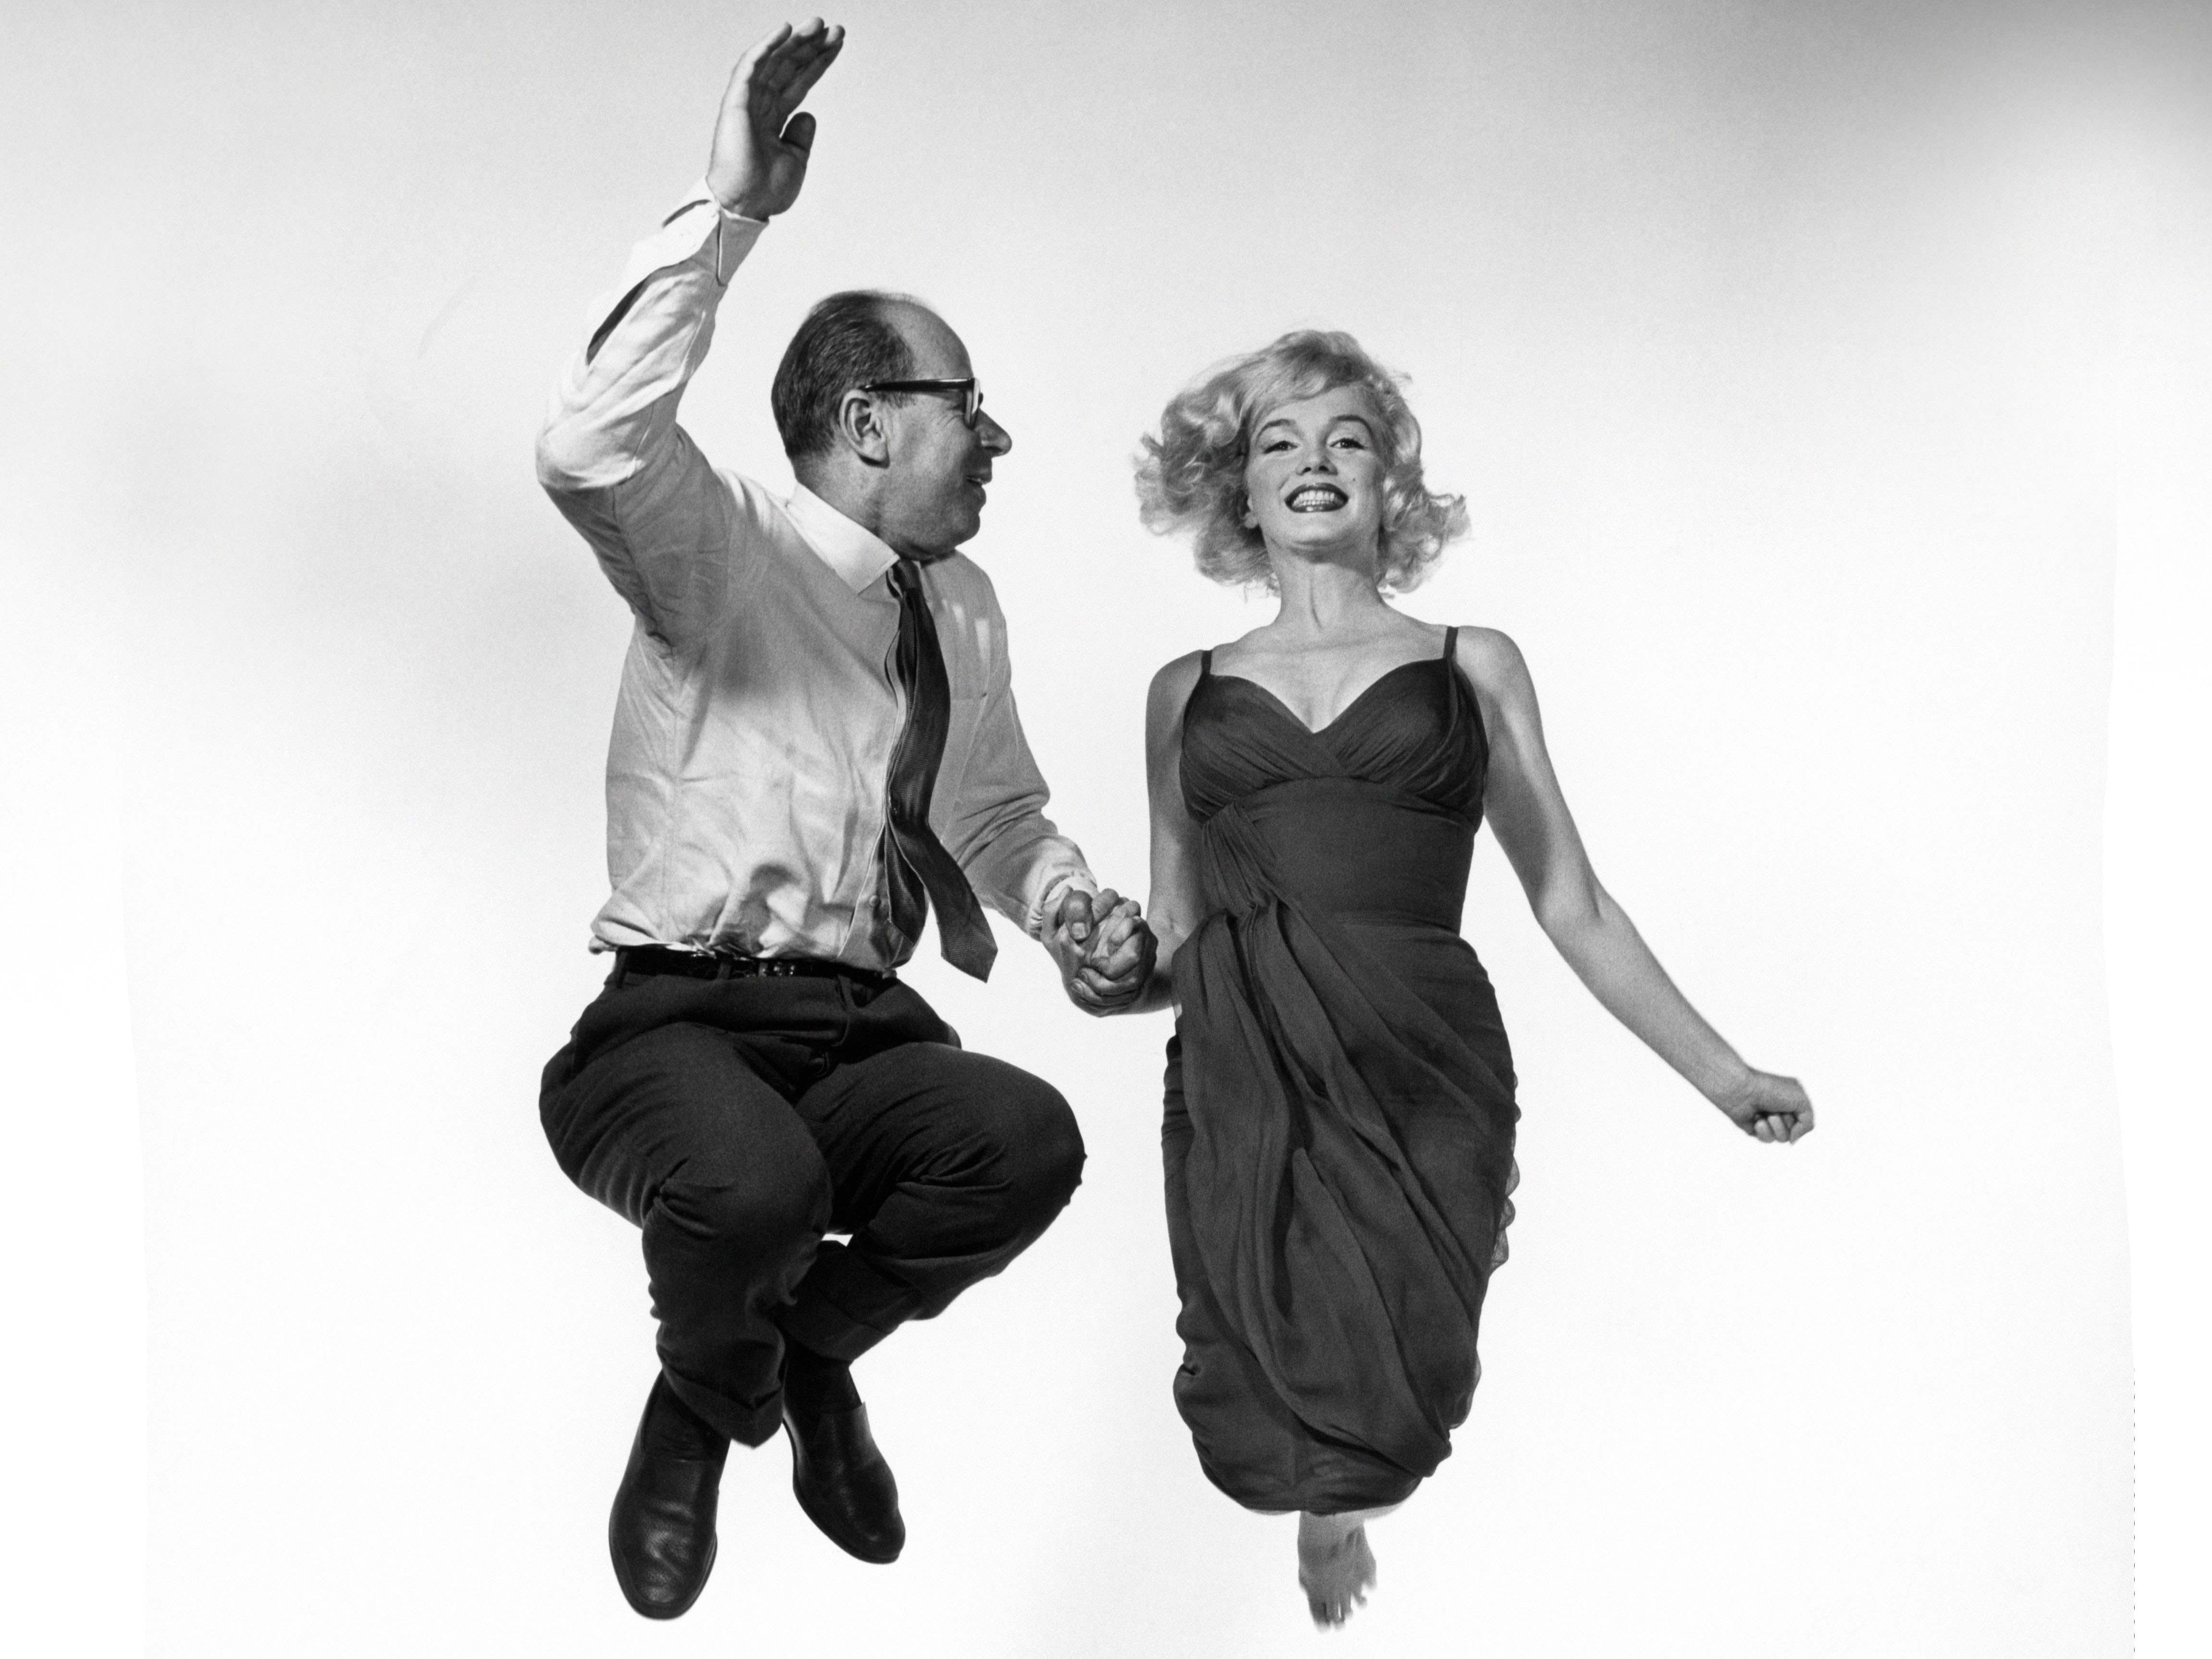 Usa 1959 American Actress Marilyn Monroe Jumping With